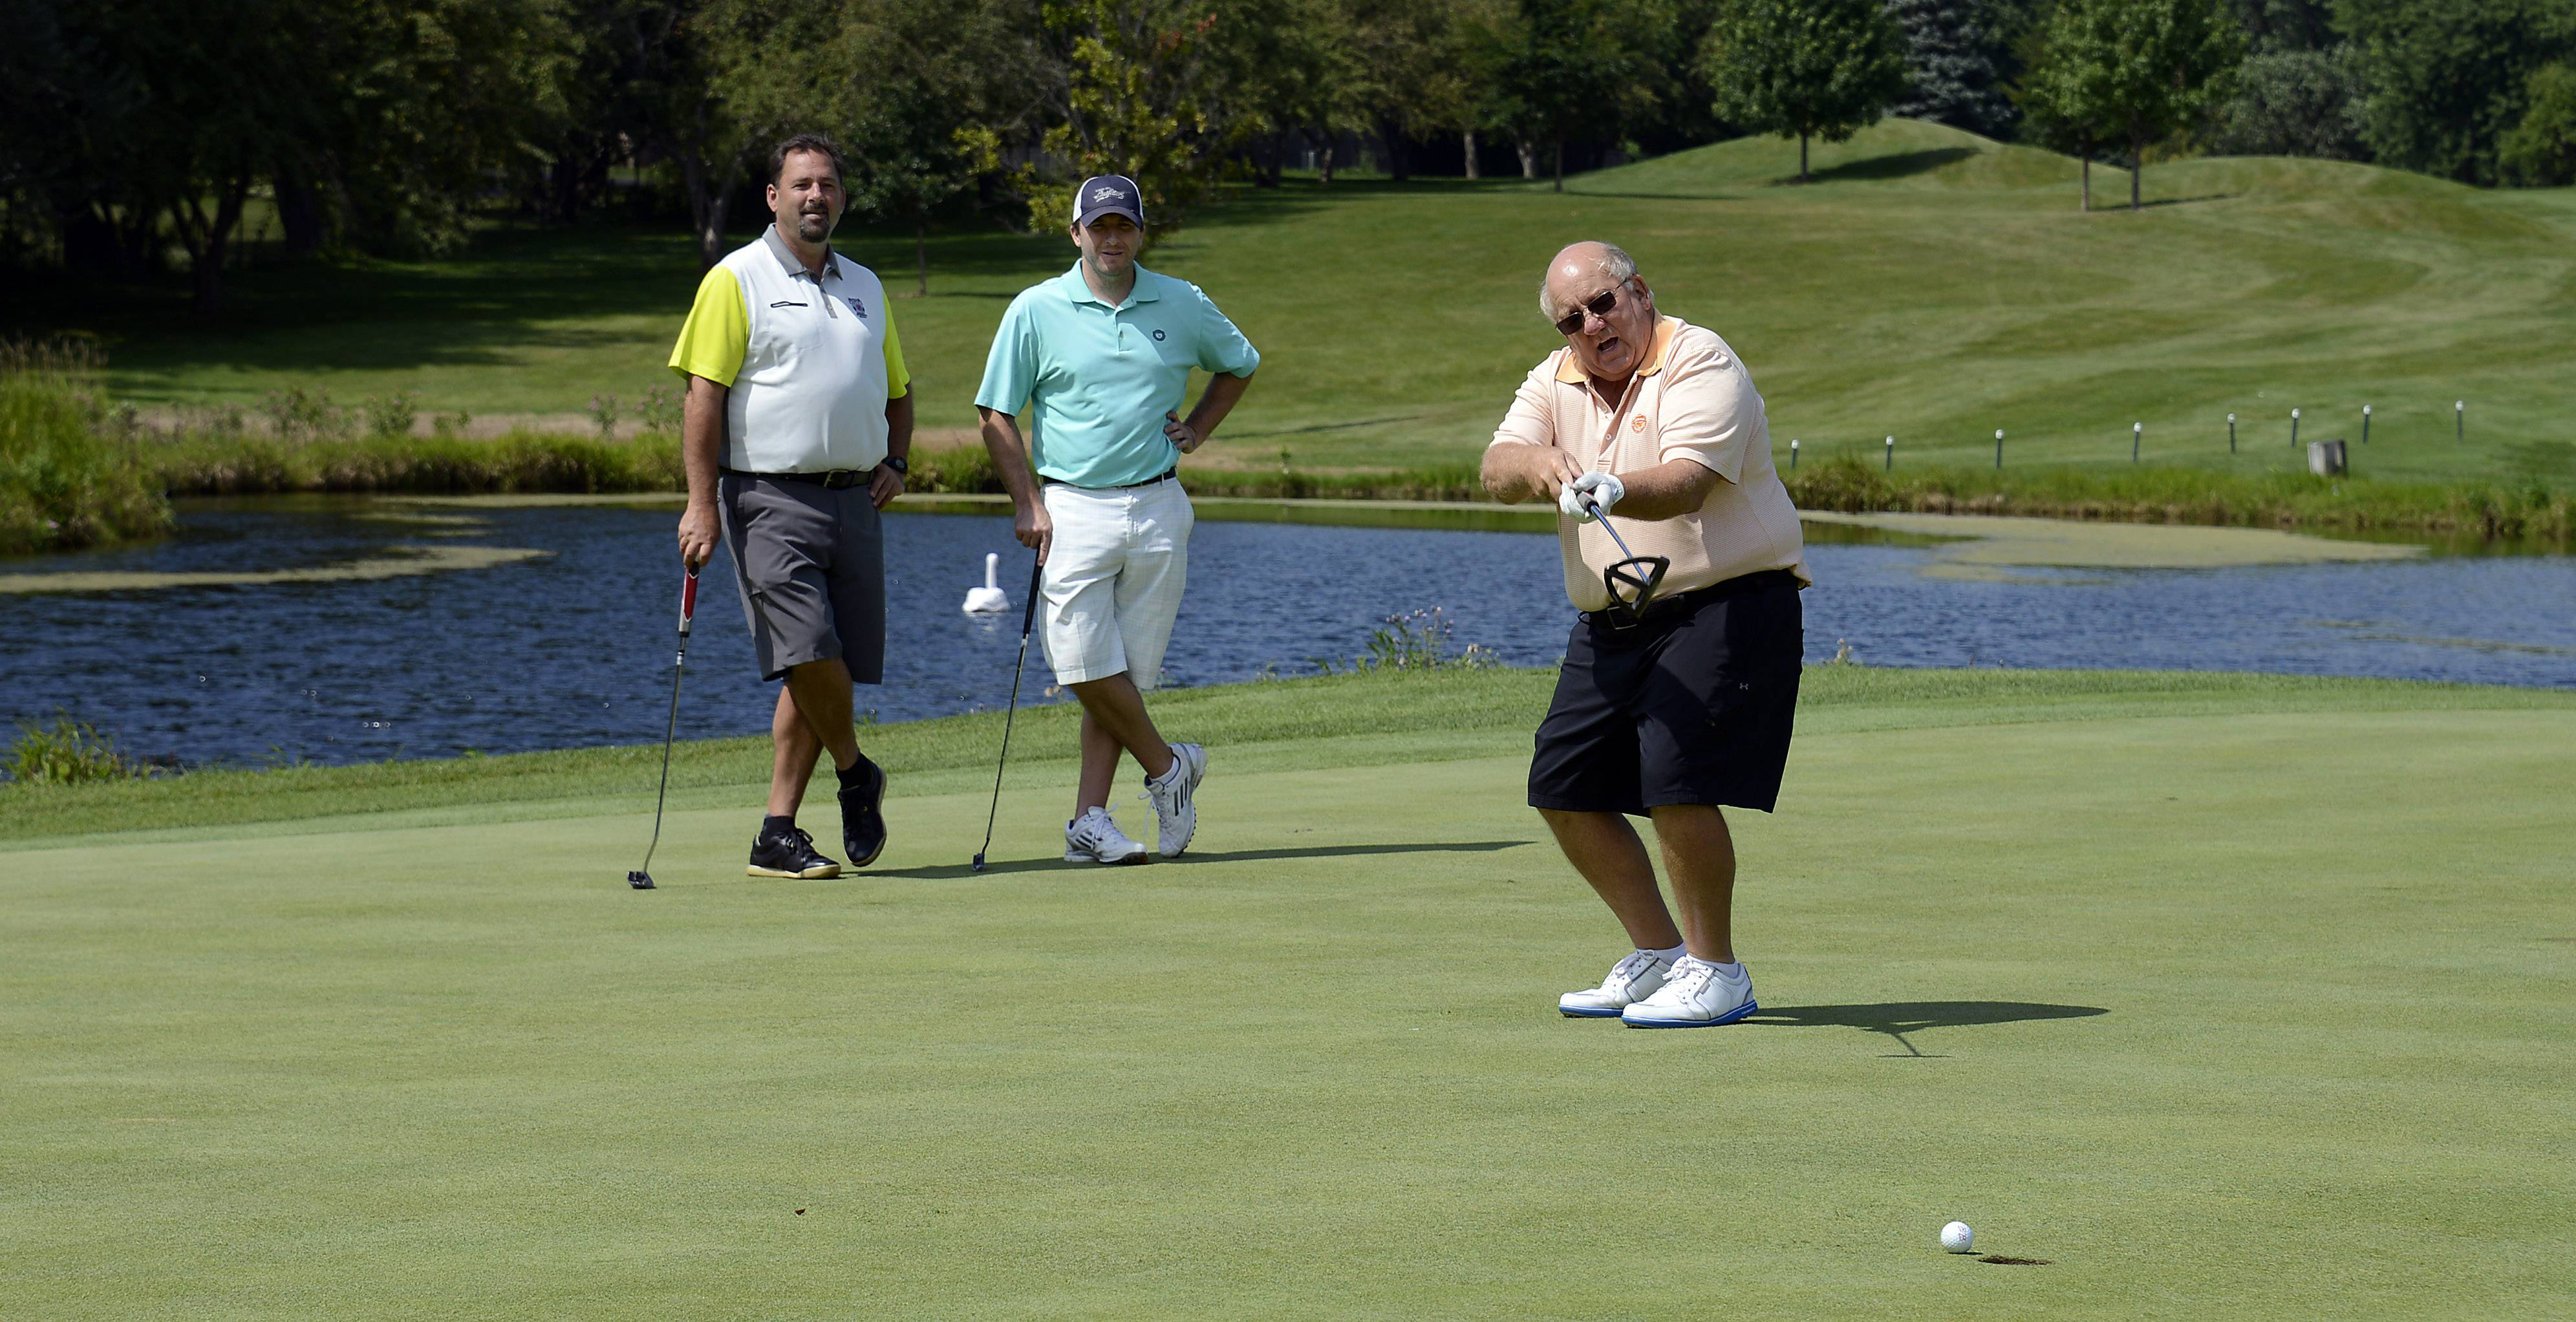 Brian Burke, president and CEO of LinksTechnology Inc. of Schaumburg, reacts as his ball heads toward the second hole but falls short. Roy Picciuca of Wintrust Bank in Des Plaines and Mike Radek of Max Packaging Inc. of Mokena wait their turn.